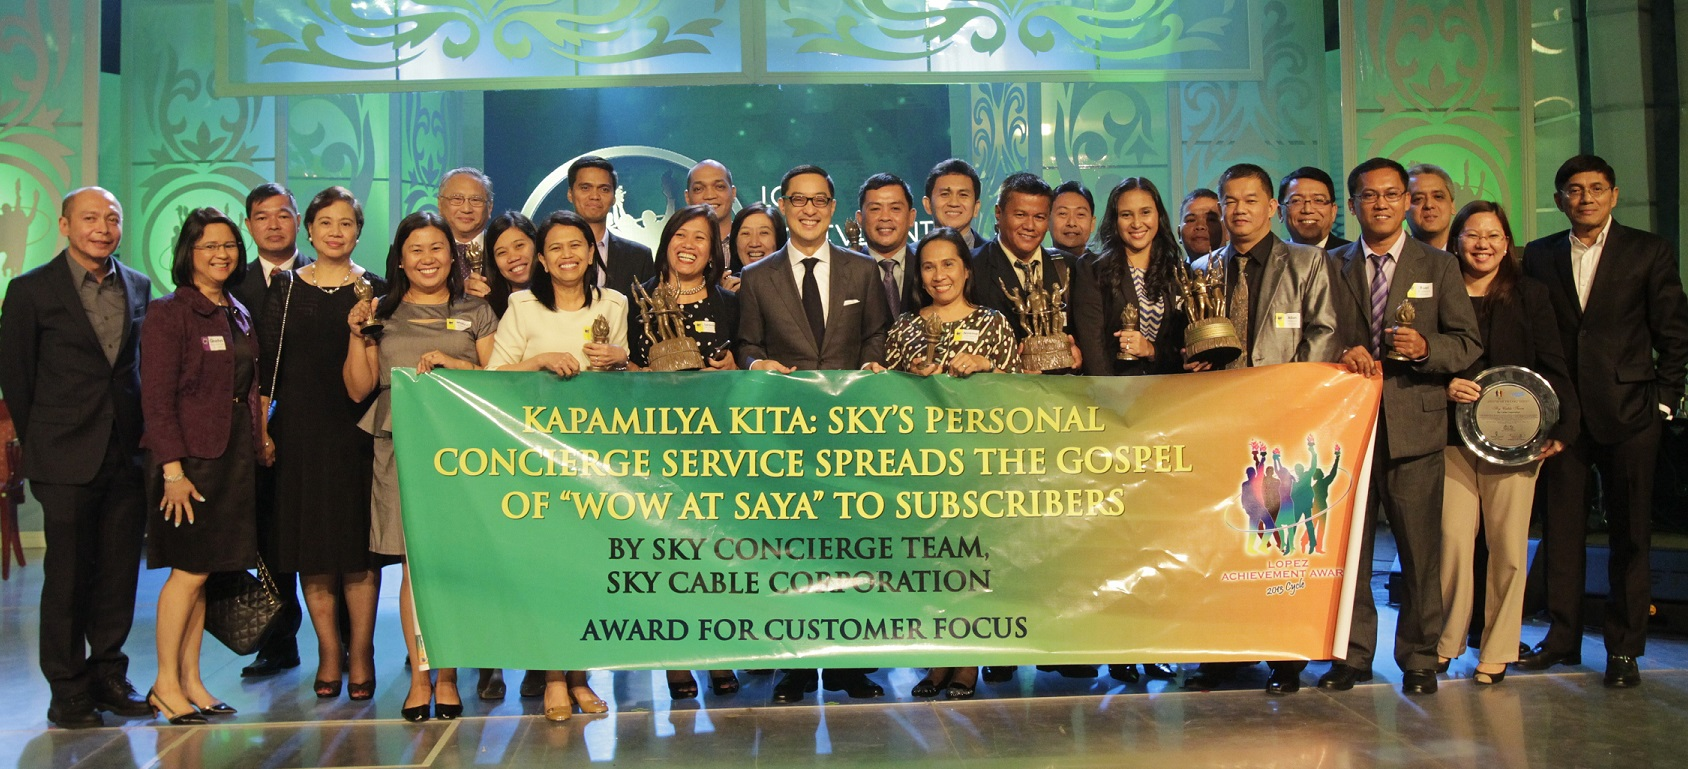 "ABS-CBN's ""Kapamilya Kita: SKY's Personal Concierge Service Spreads the Gospel of ""WOW at Saya"" to Subscribers"" (Customer Focus)"